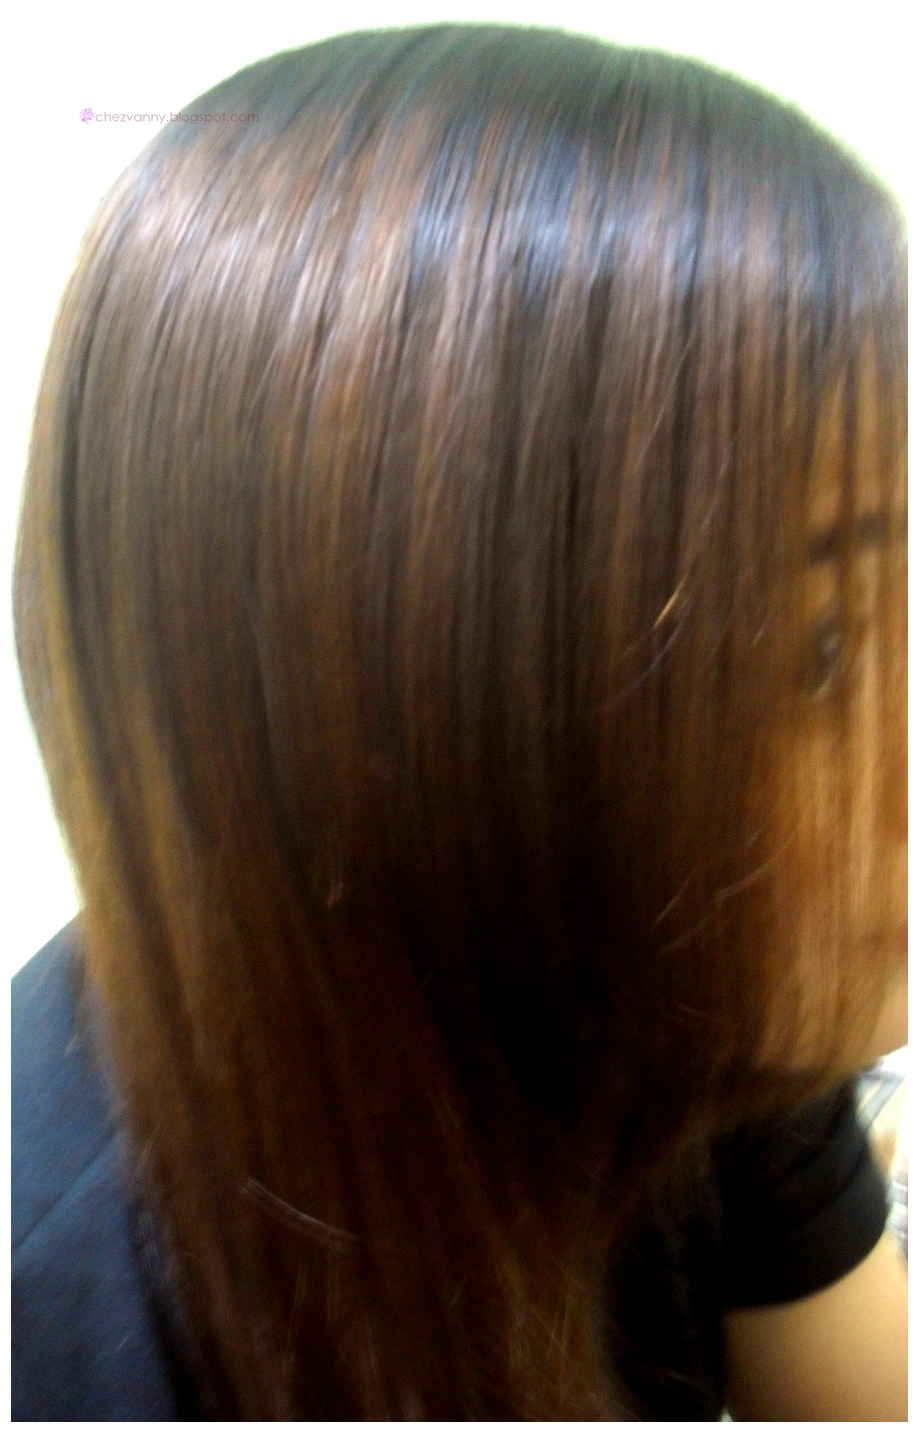 Lava Bean Glam Works Permanent Hair Dye Color Shampoo In Light Brown